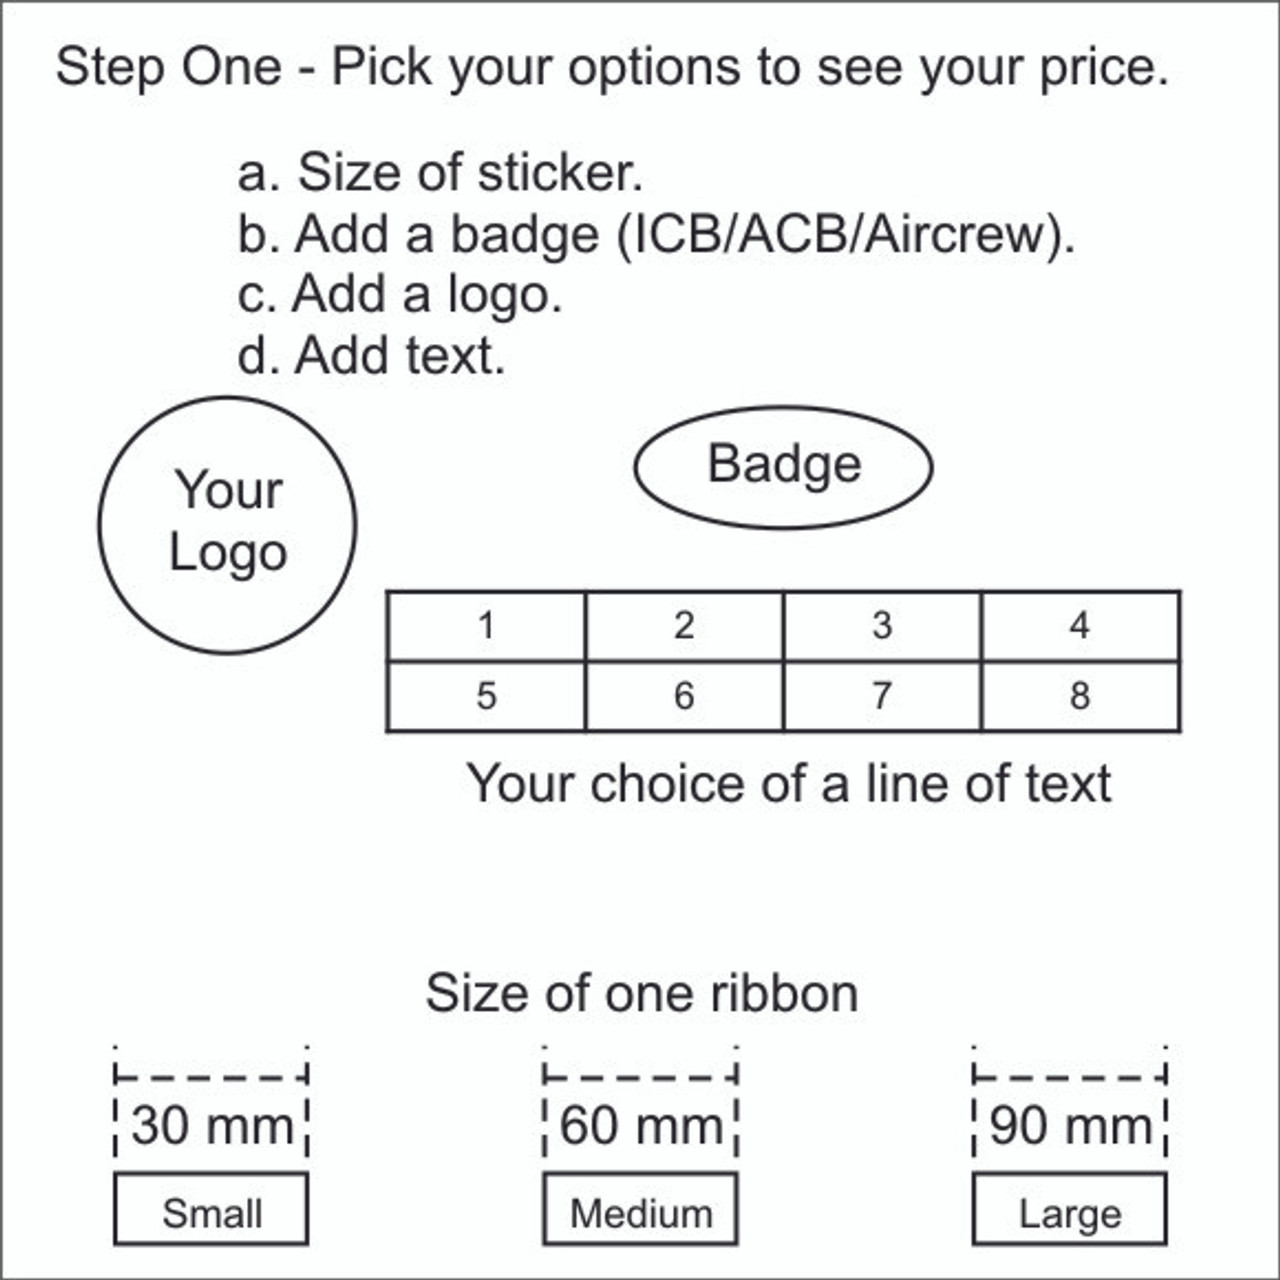 Sticker - 5 to 8 Ribbons